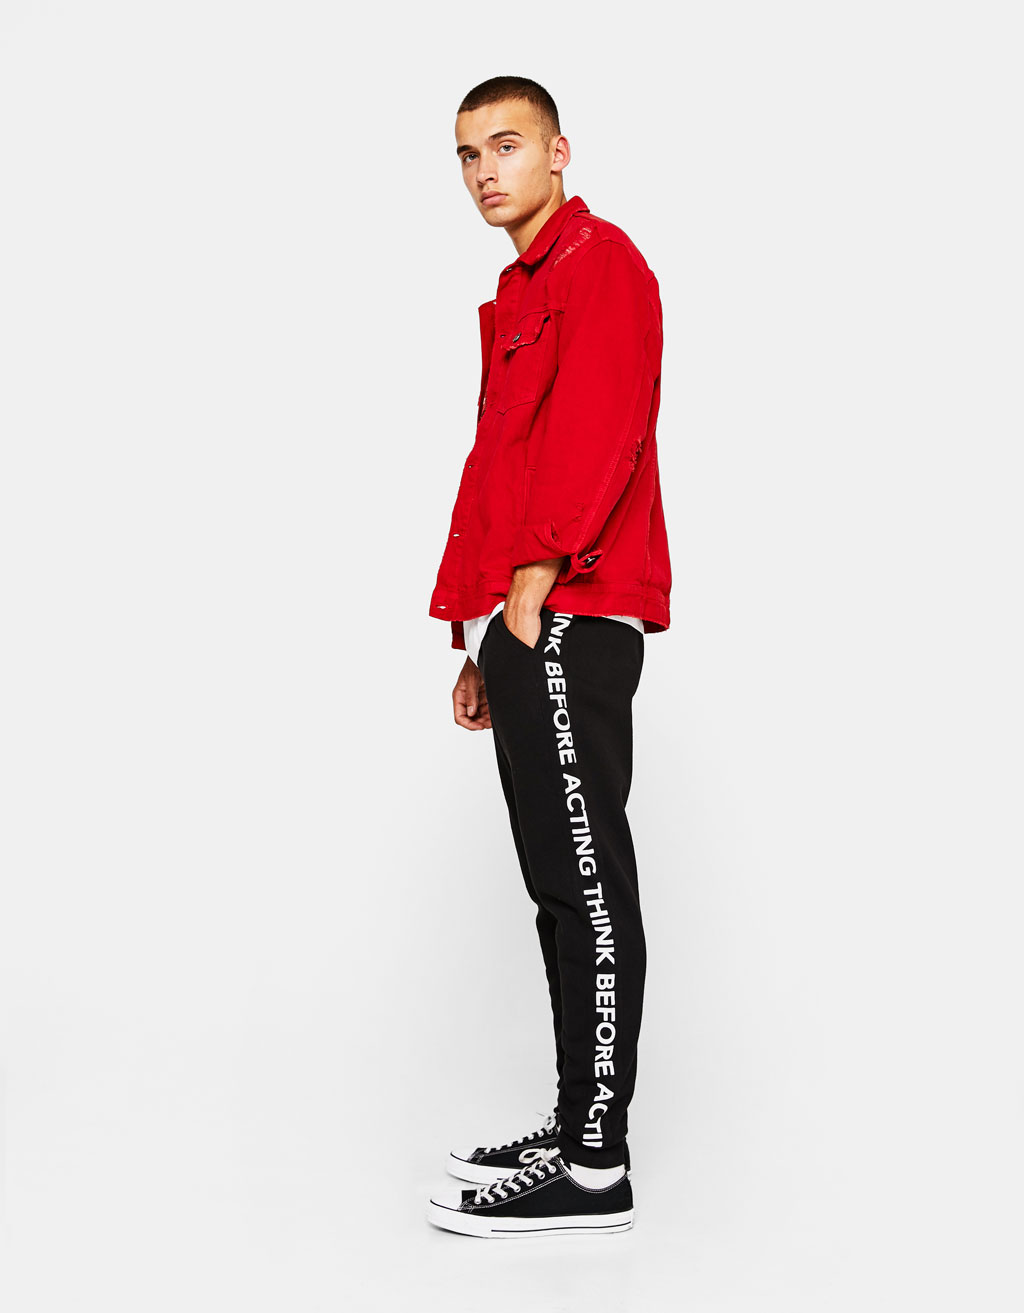 Plush trousers with side slogan